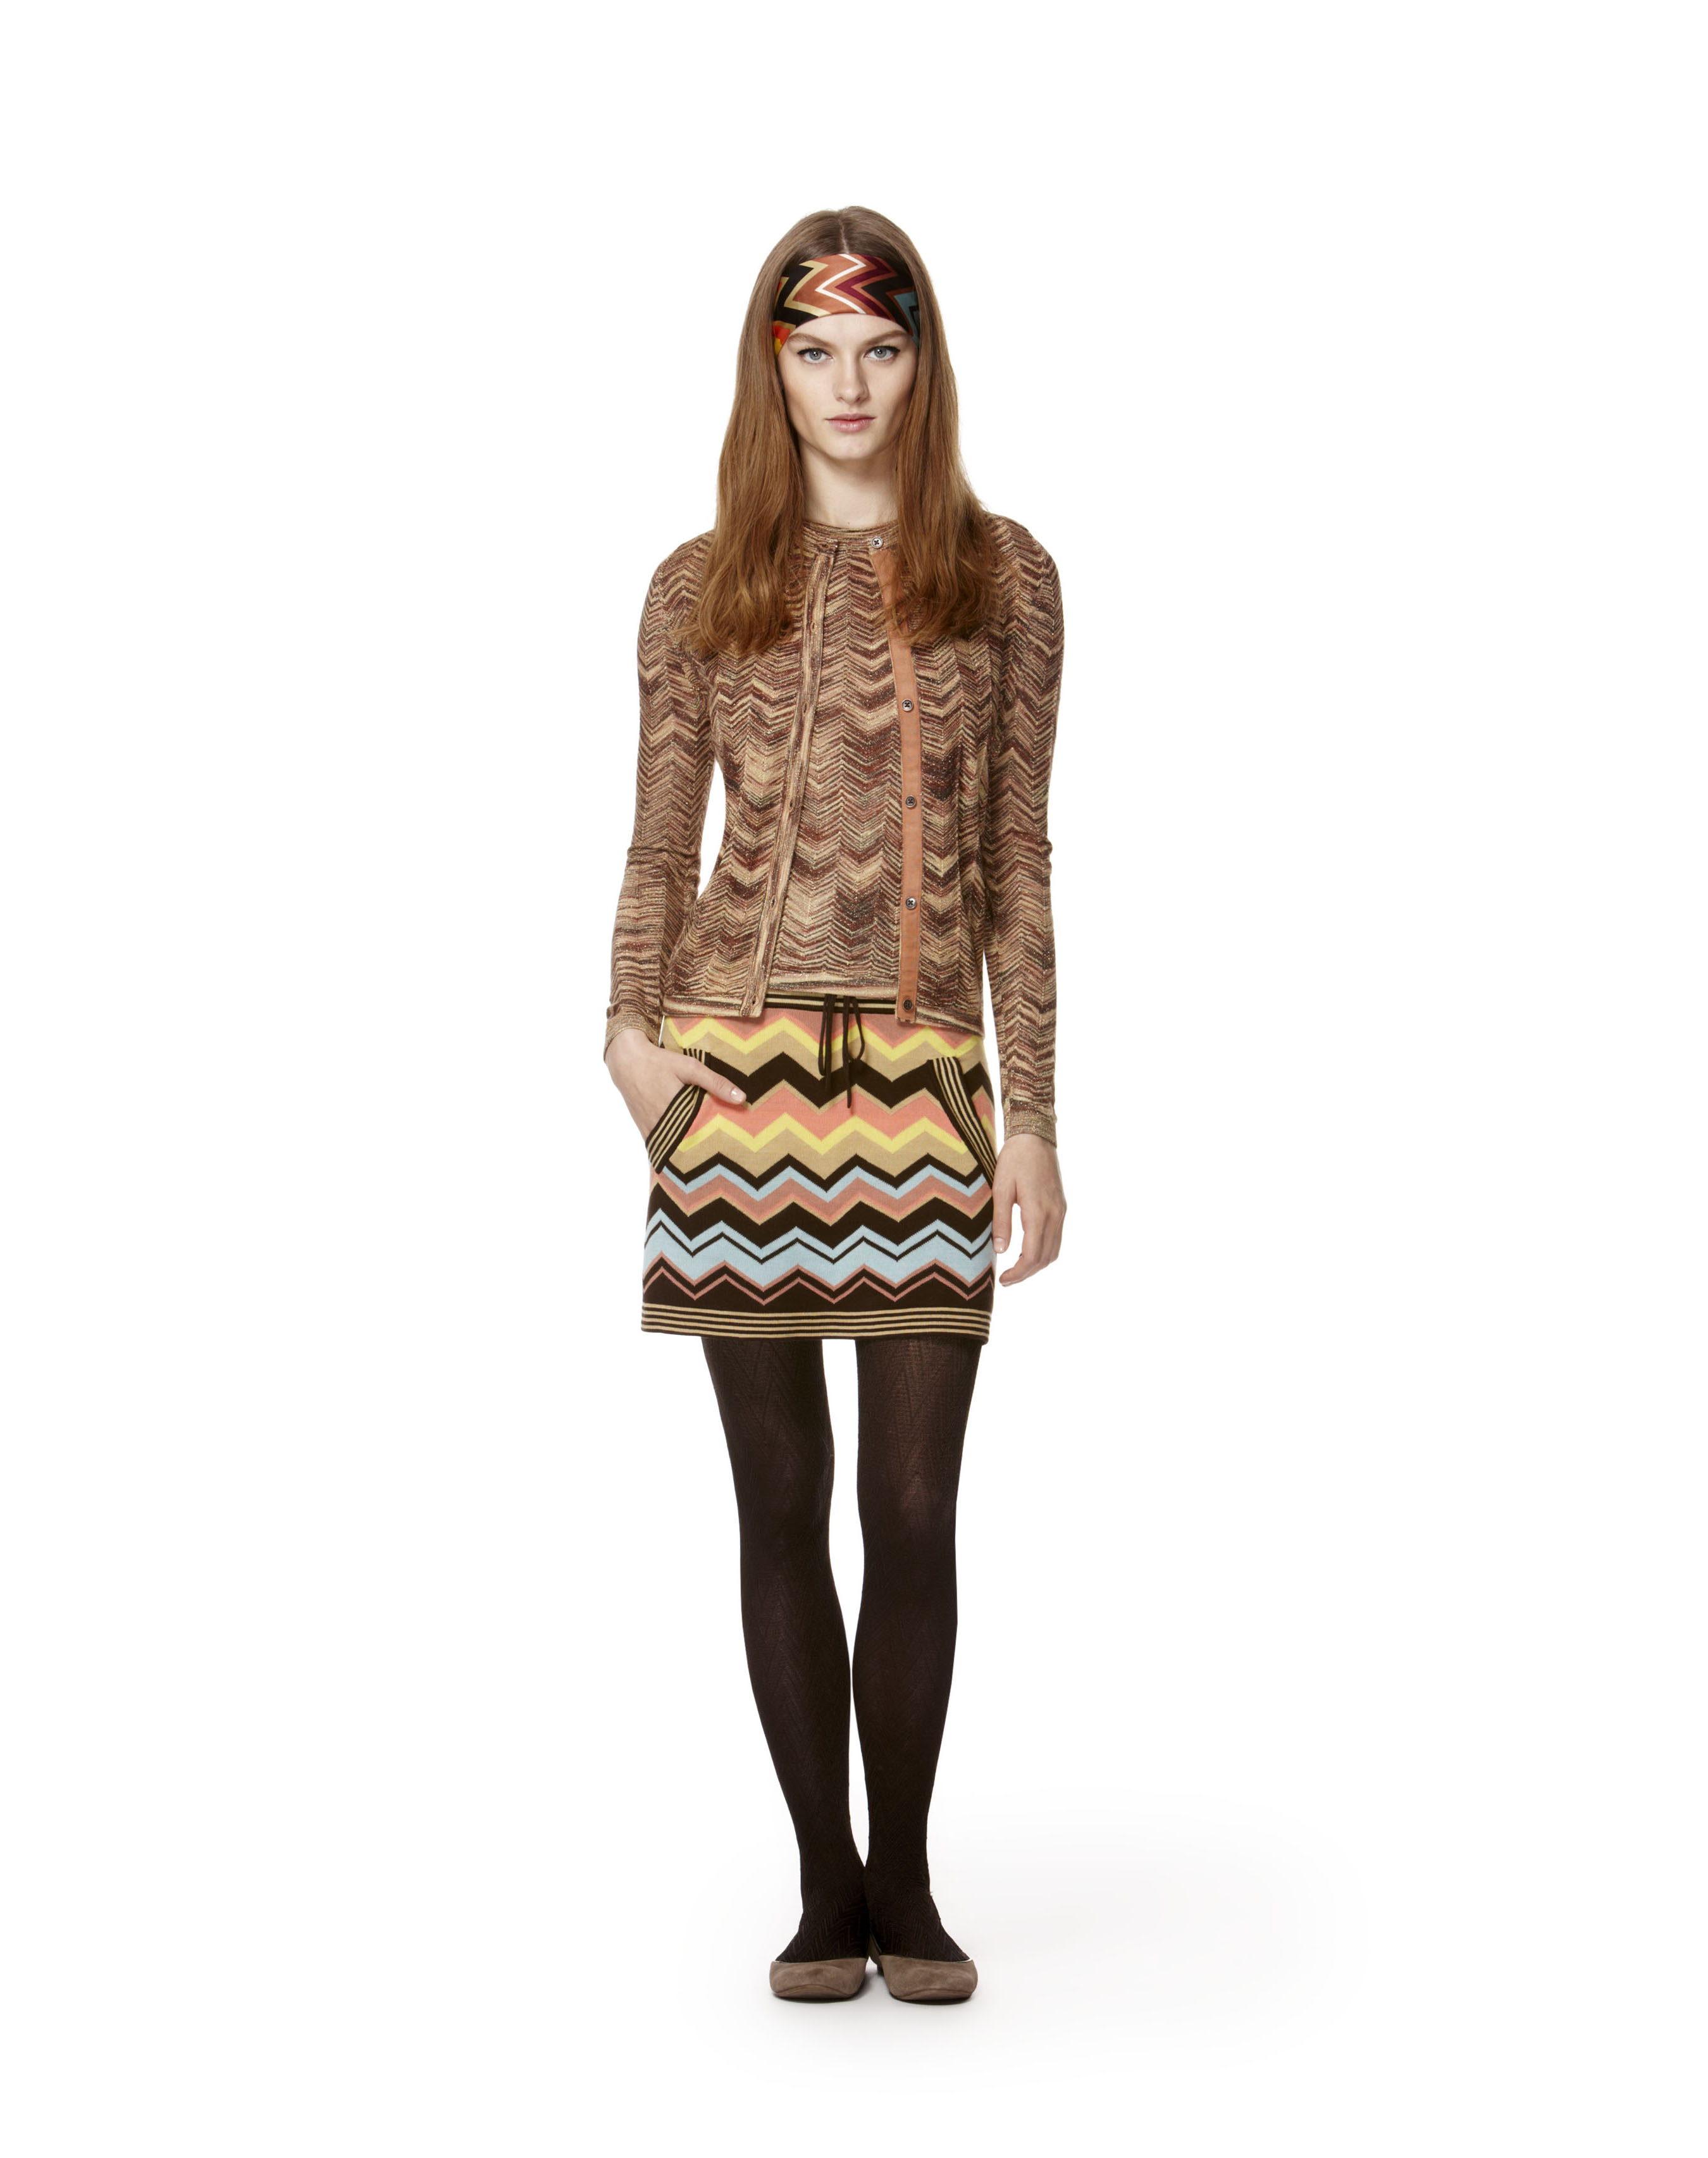 MISSONI FOR TARGET IS ALMOST HERE!   Red Carpet Roxy